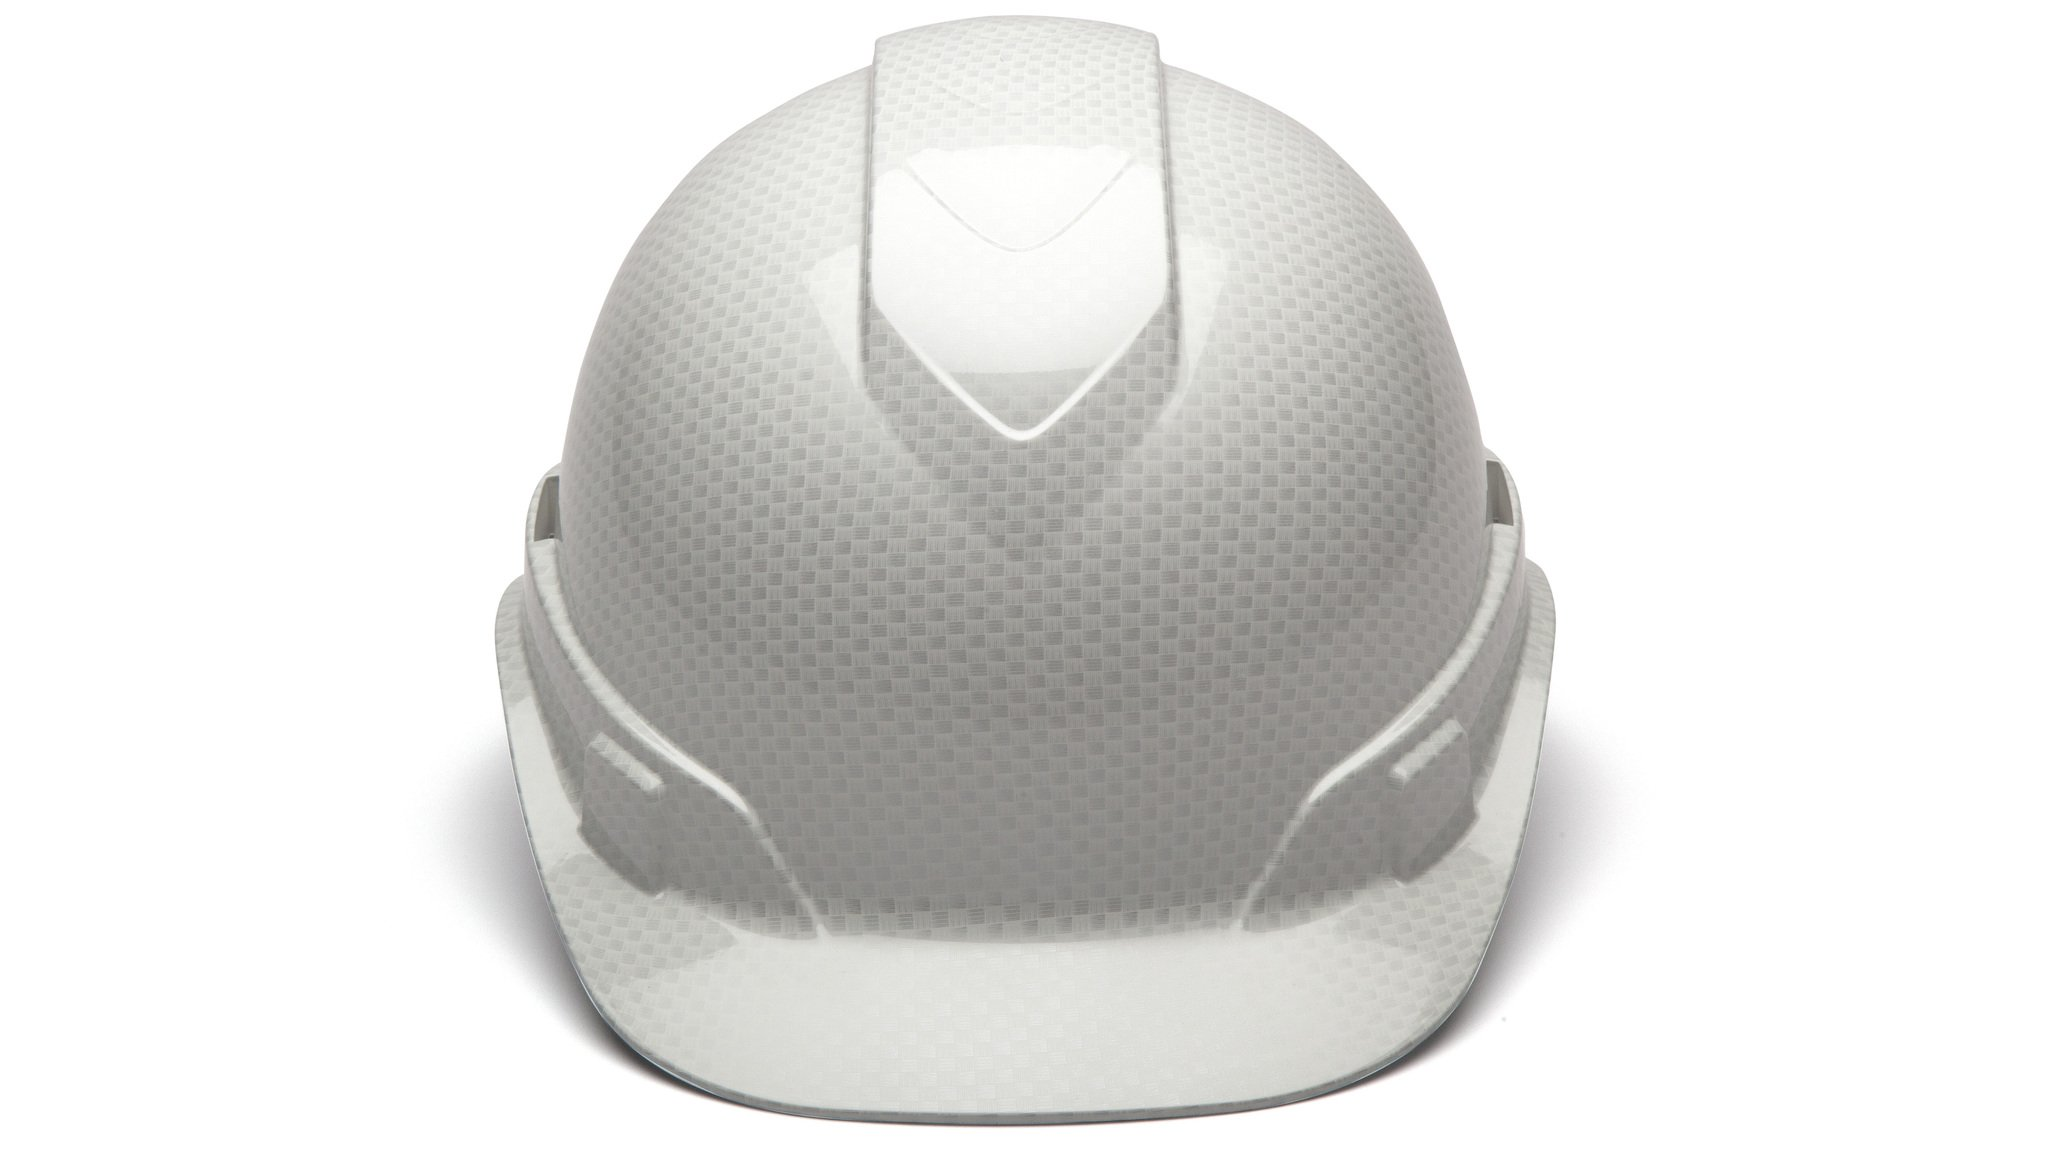 Cap Style Hard Hat, Adjustable Ratchet 4 Pt Suspension, Durable Protection safety helmet, White Shiny Graphite Pattern Design, by Tuff America by Pyramex (Image #4)